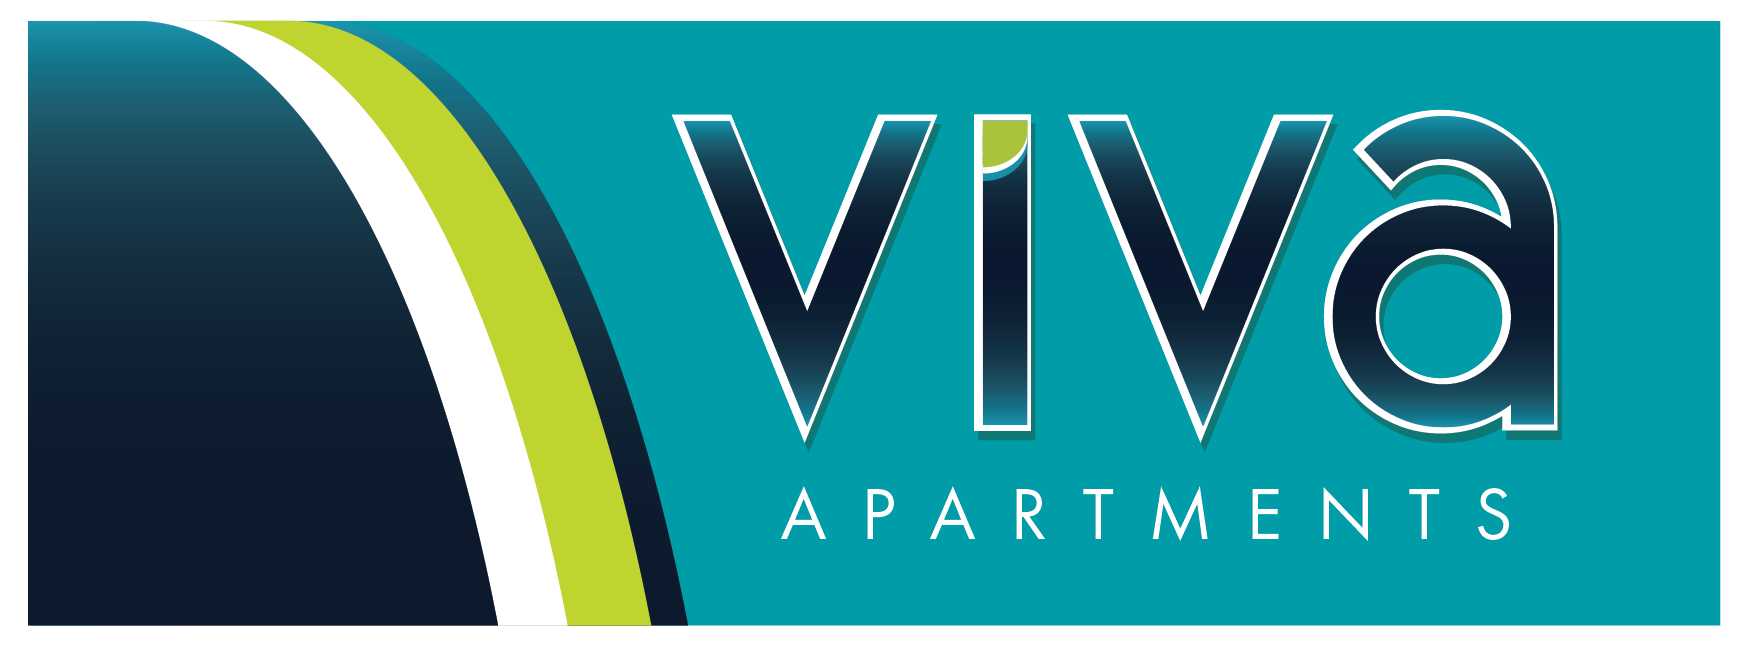 Viva Apartments Logo